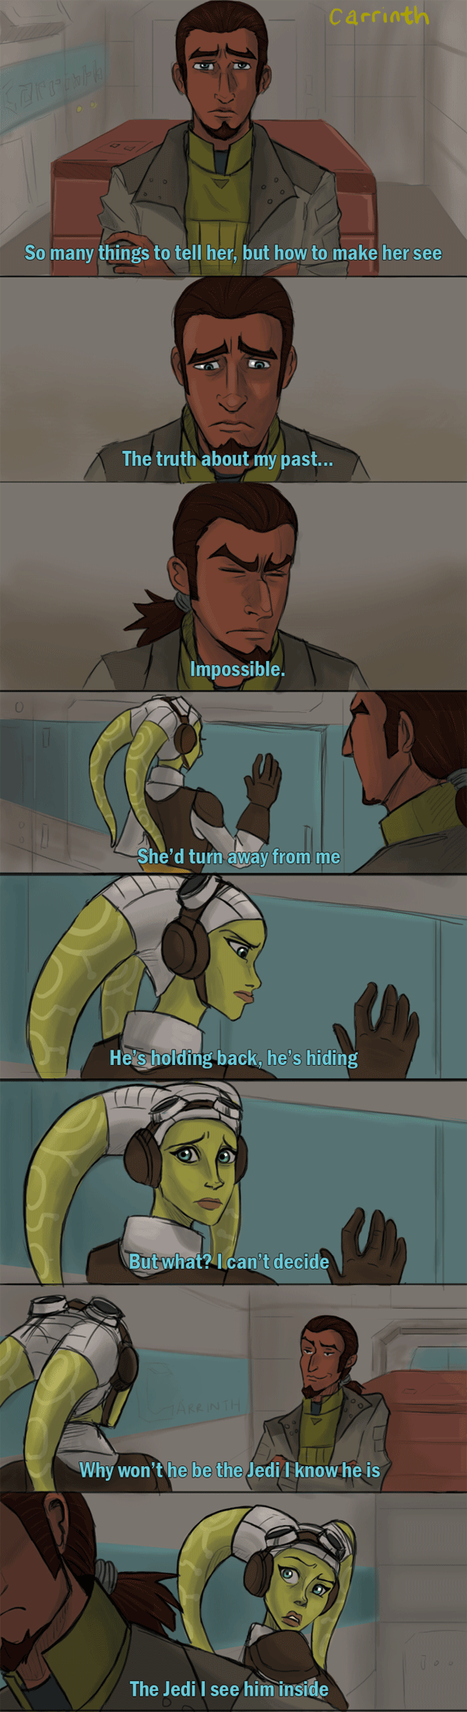 SW Rebels: Can you feel? by carrinth